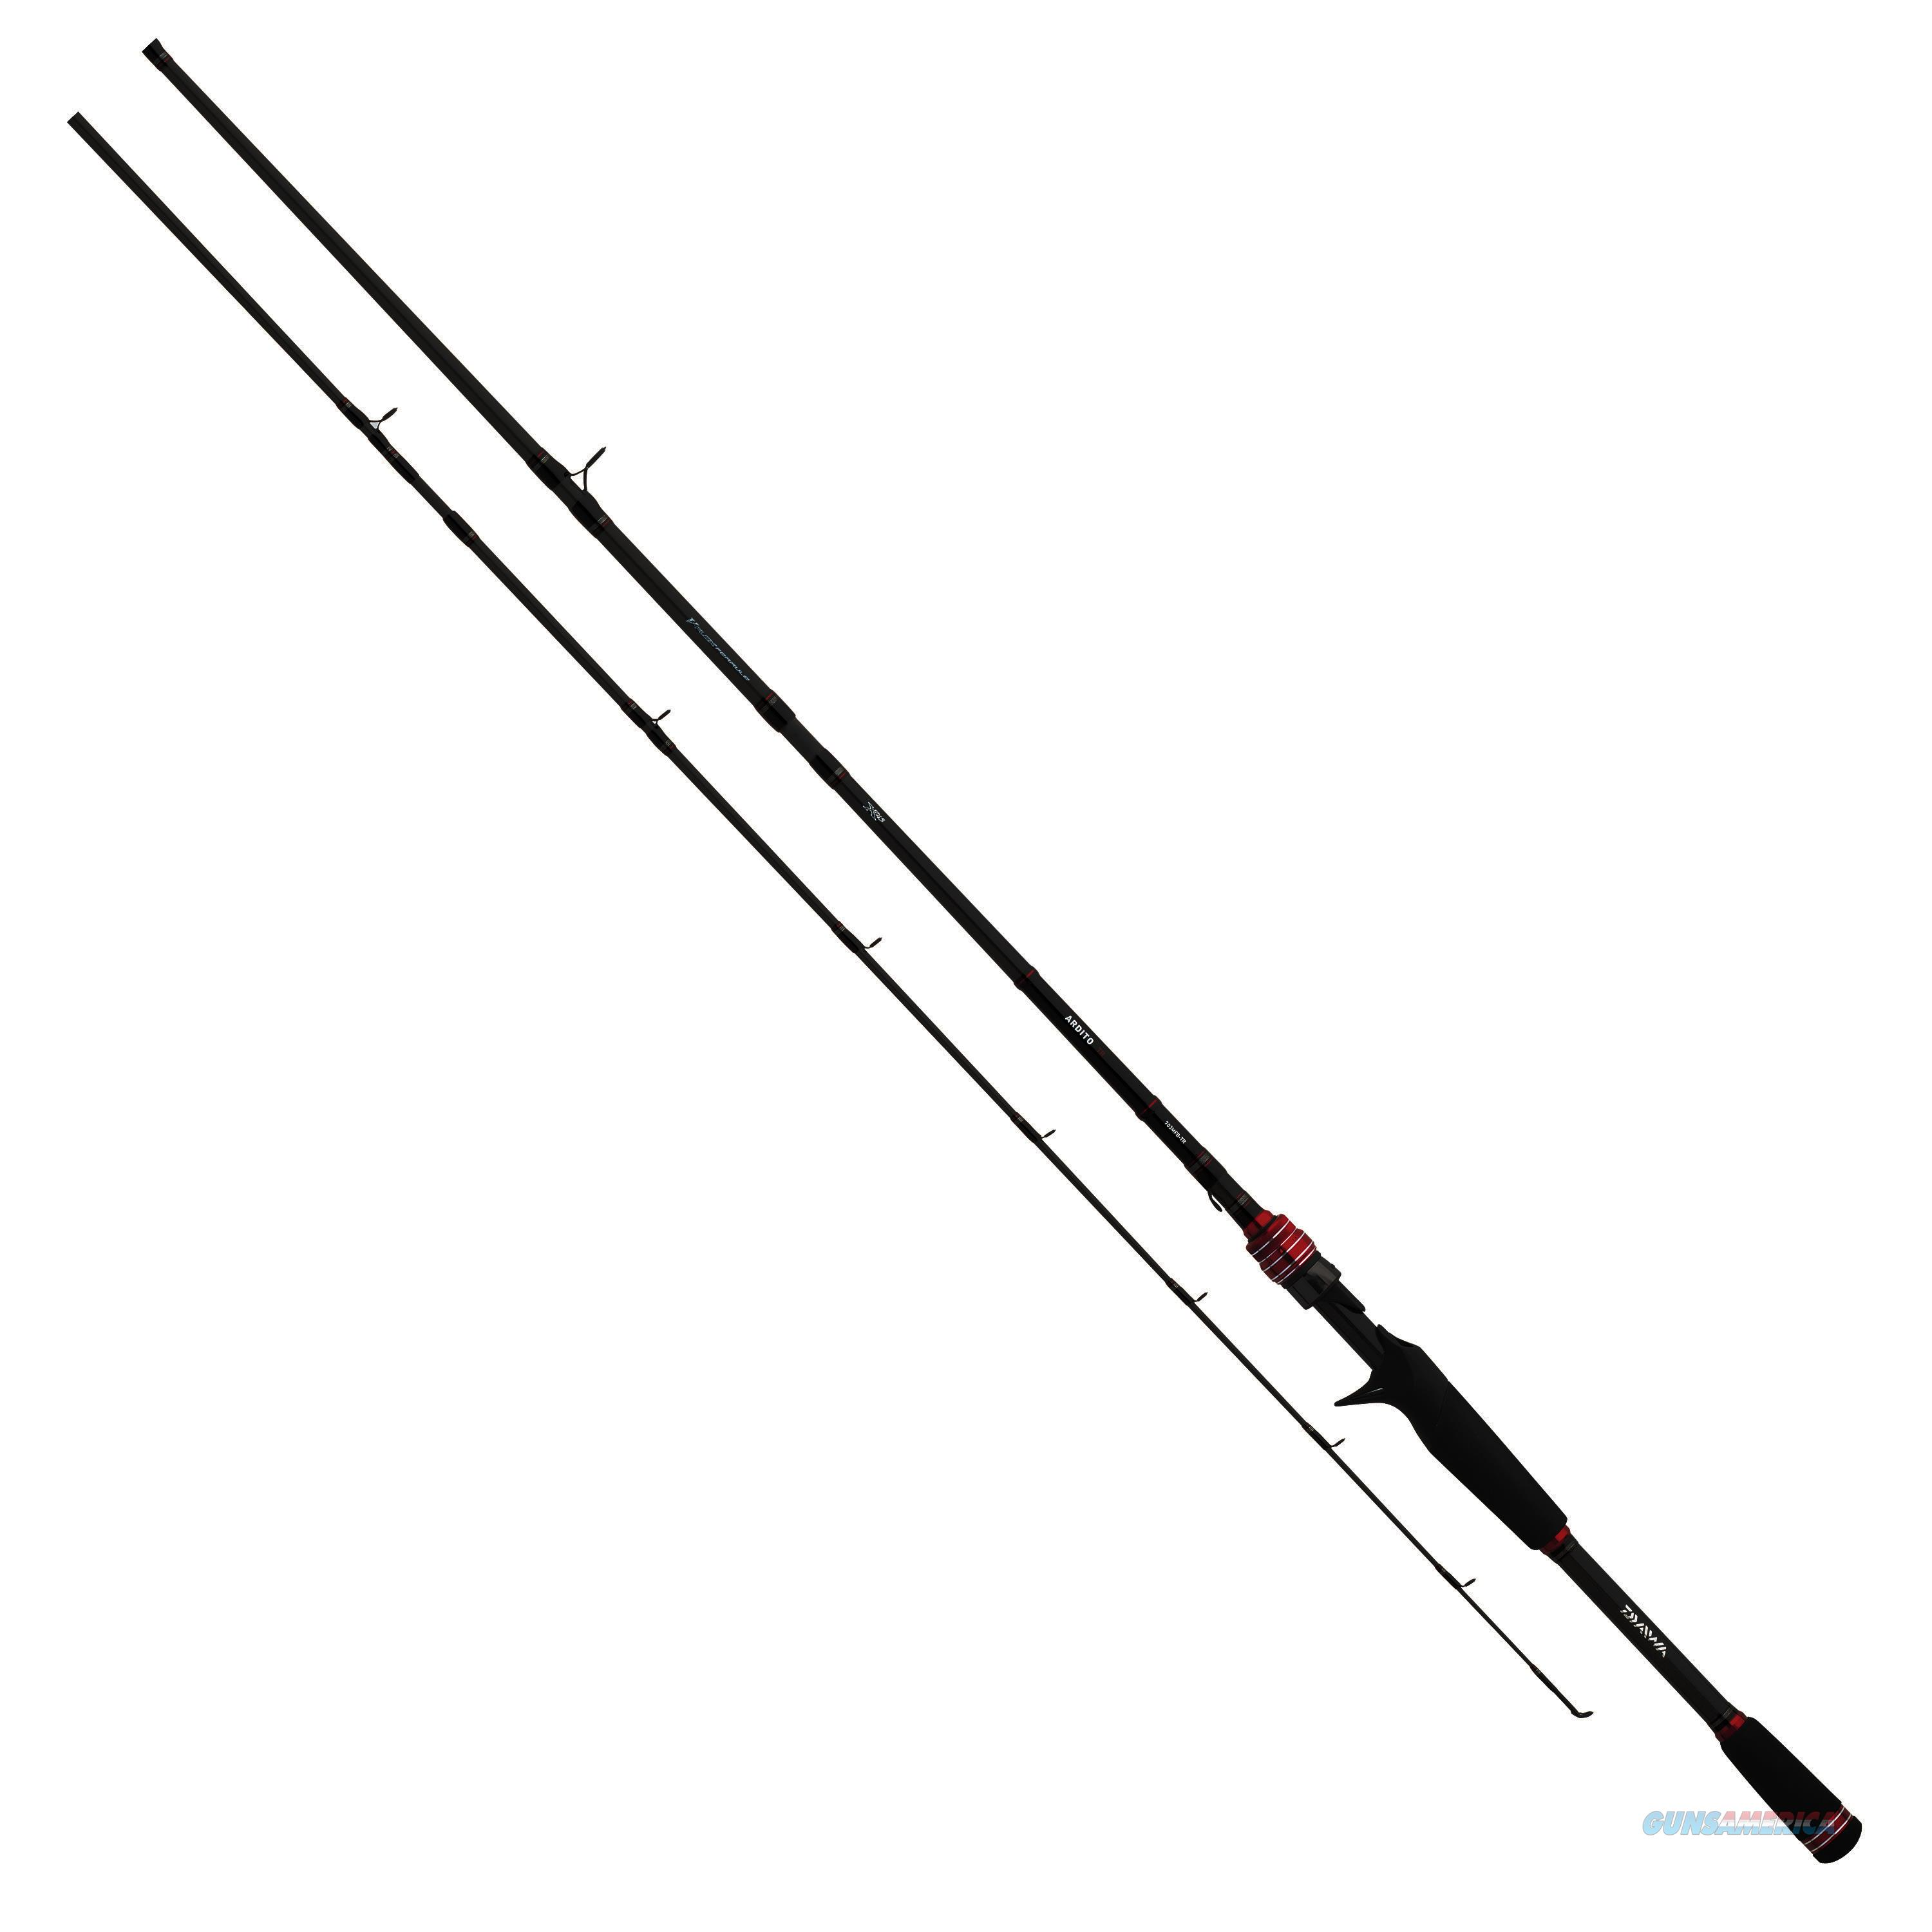 Daiwa Ardito-Tr Multi Piece Travel Trigger Rod ARDT703MFB-TR  Non-Guns > Fishing/Spearfishing